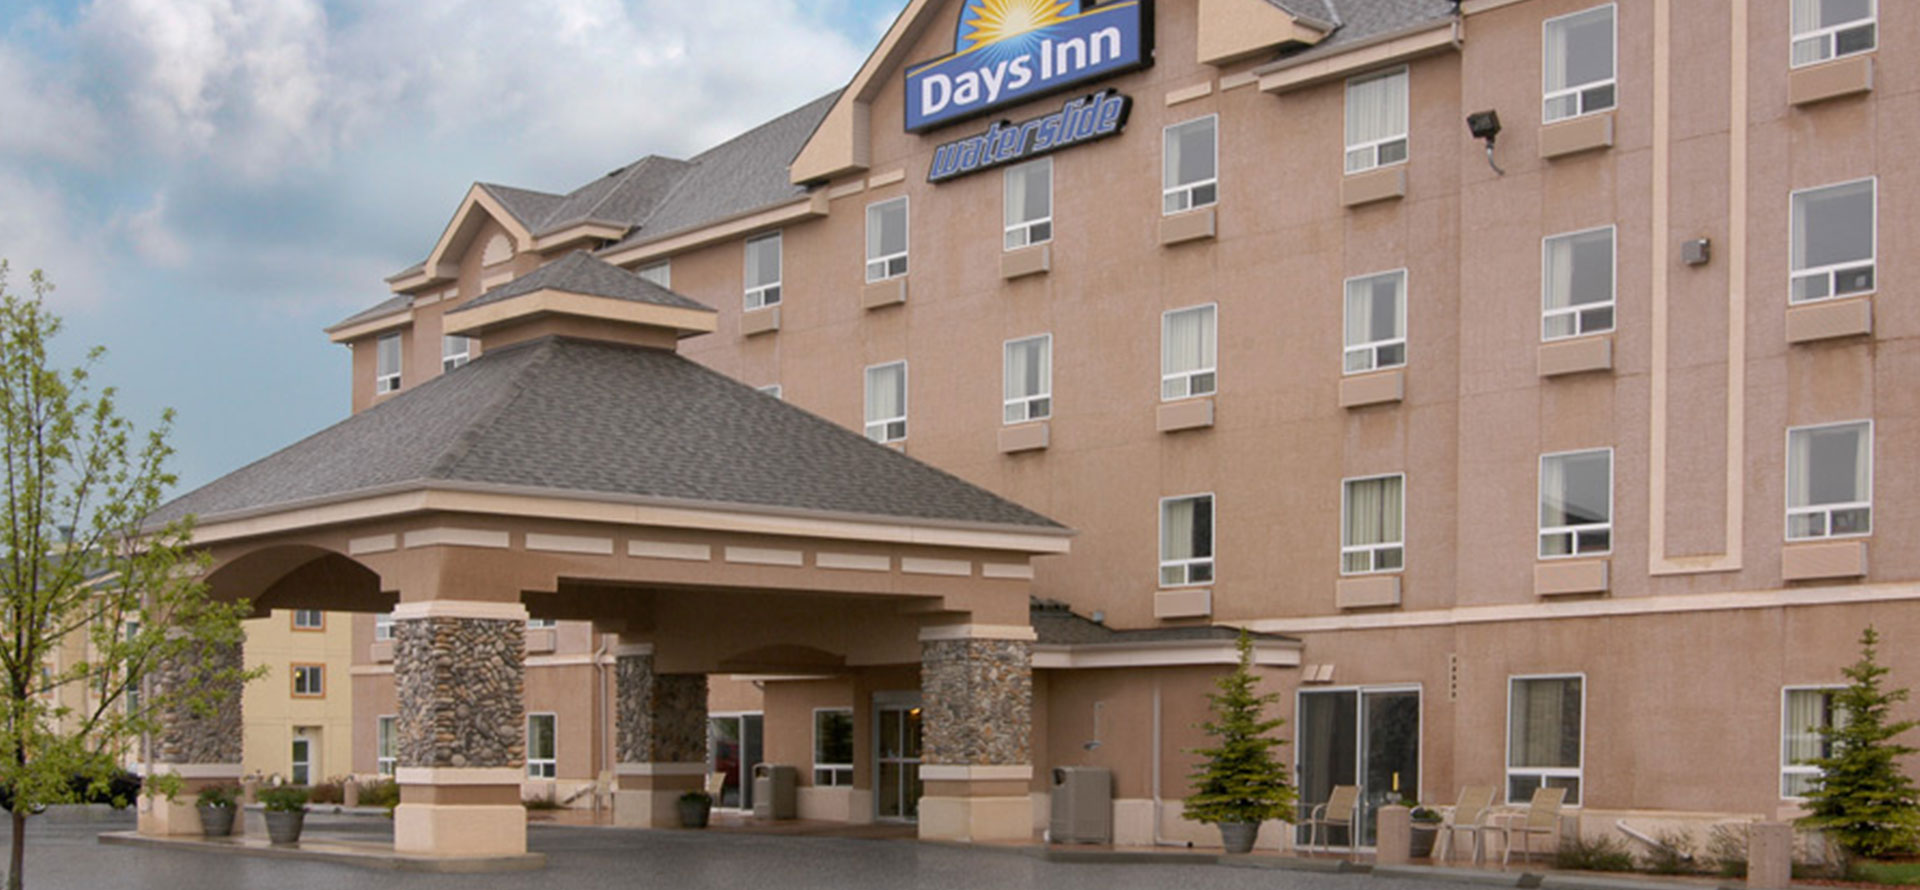 Large view of main entrance to Days Inn Red Deer, Alberta with a stone and concrete portico and the corporate logo placed at the summit of the hotel.